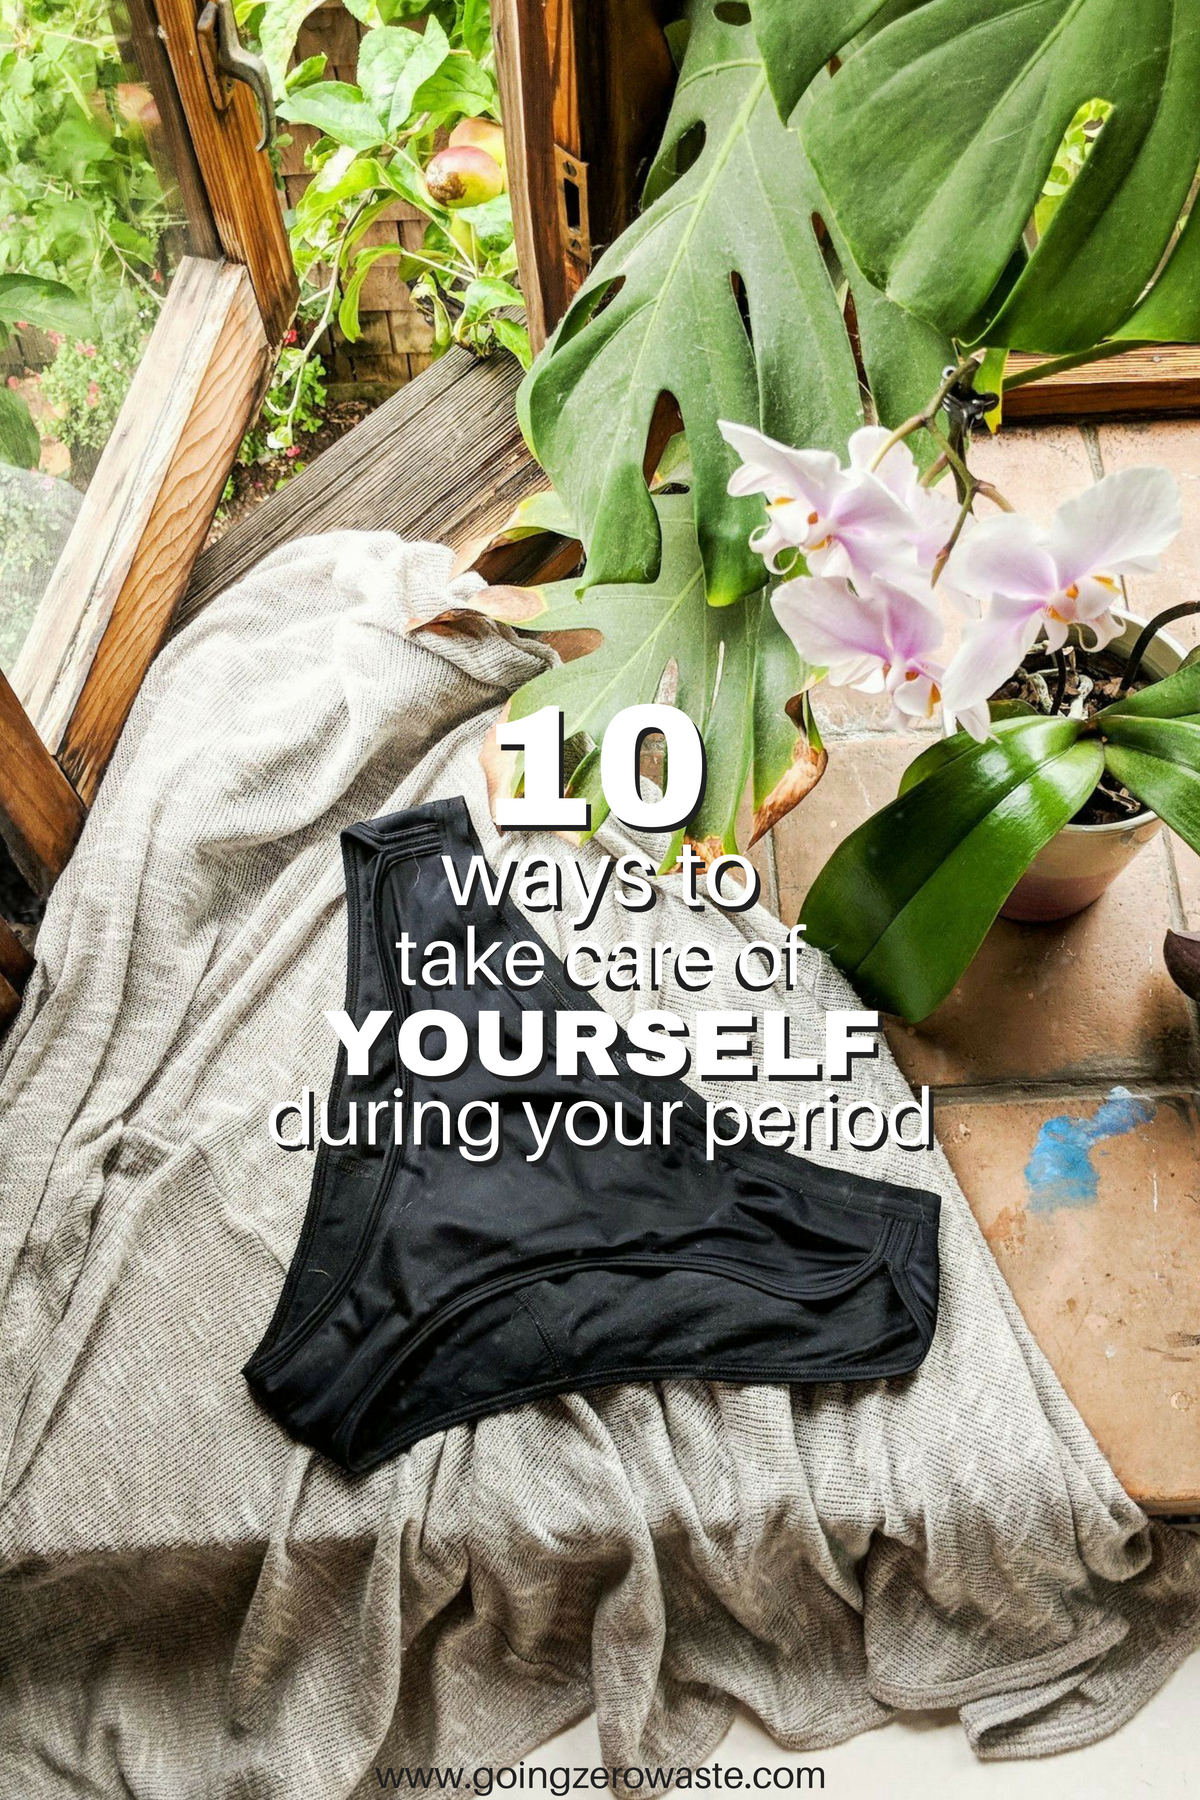 10 Ways to take care of yourself during your period from www.goingzerowaste.com #wellness #zerowaste #periods